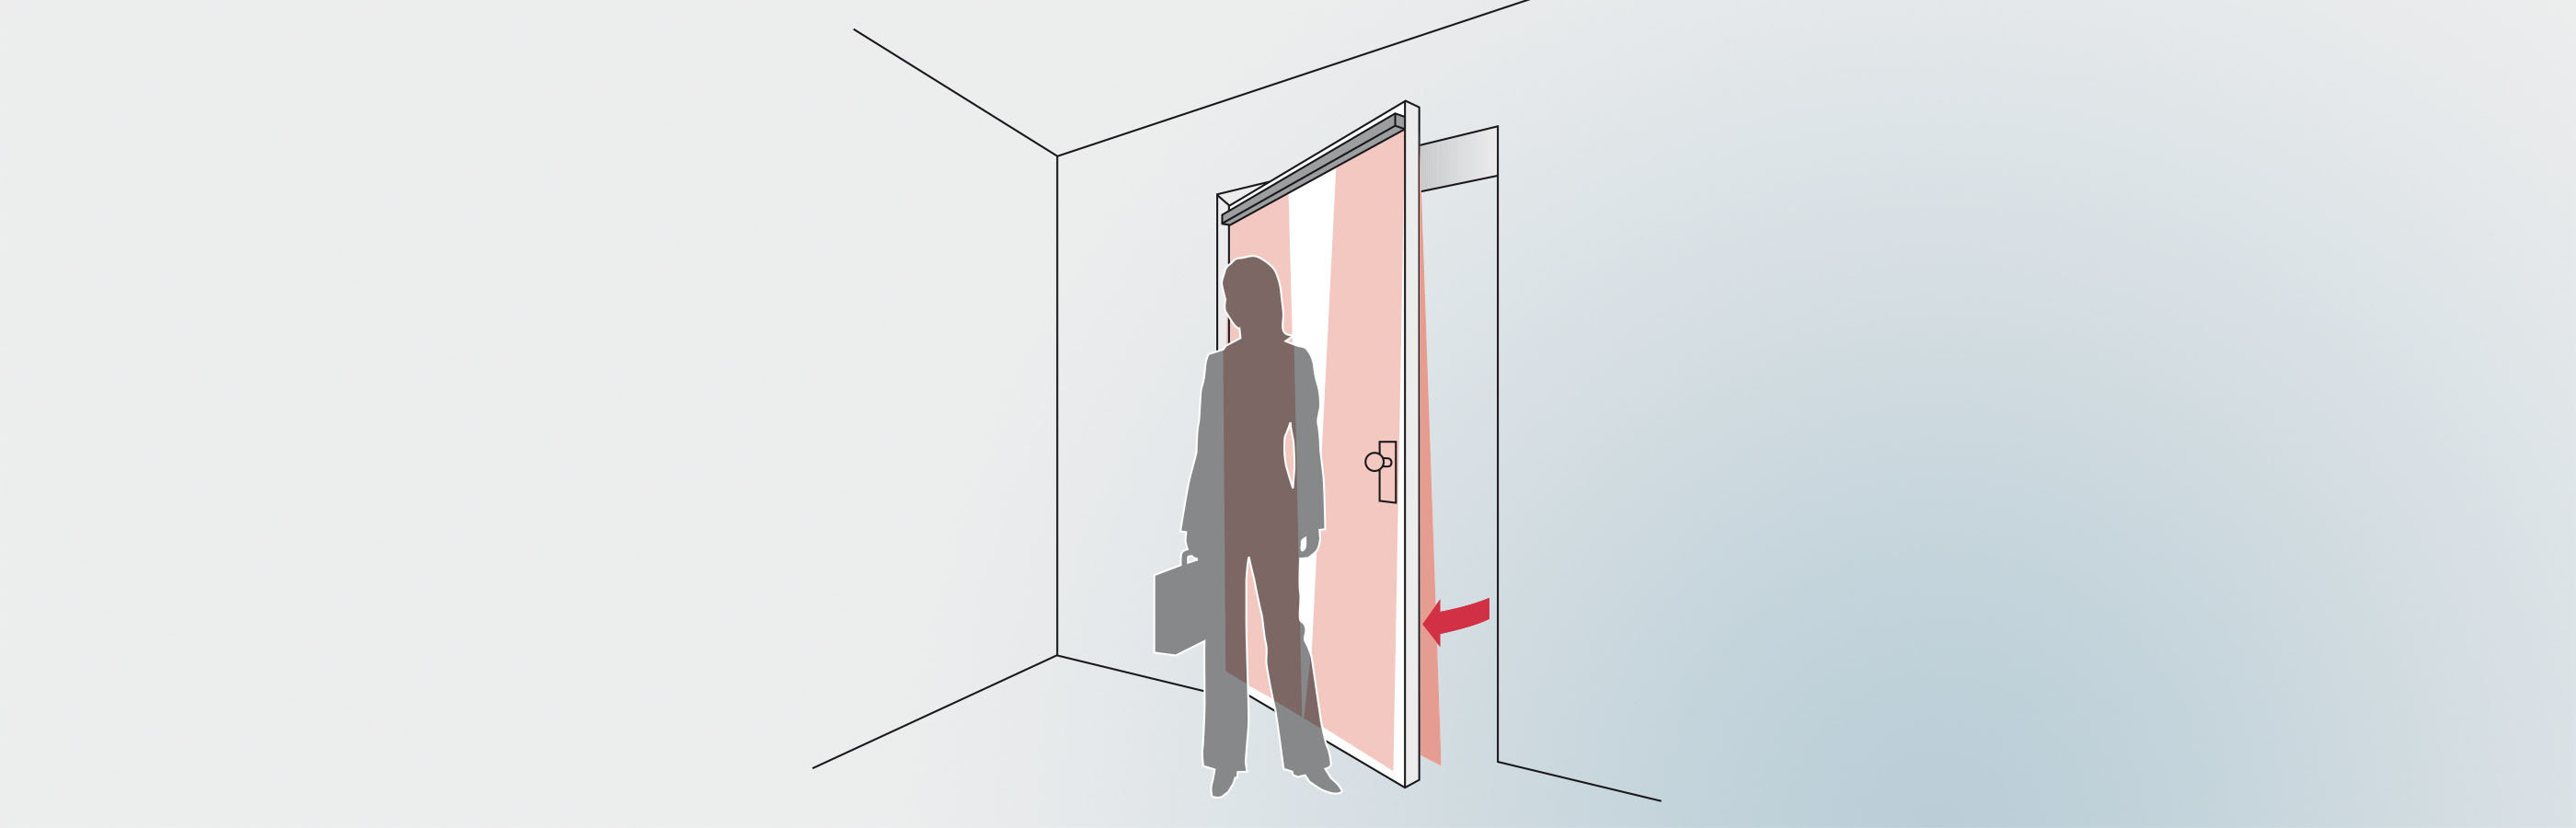 UniScan presence detector secures the swing door